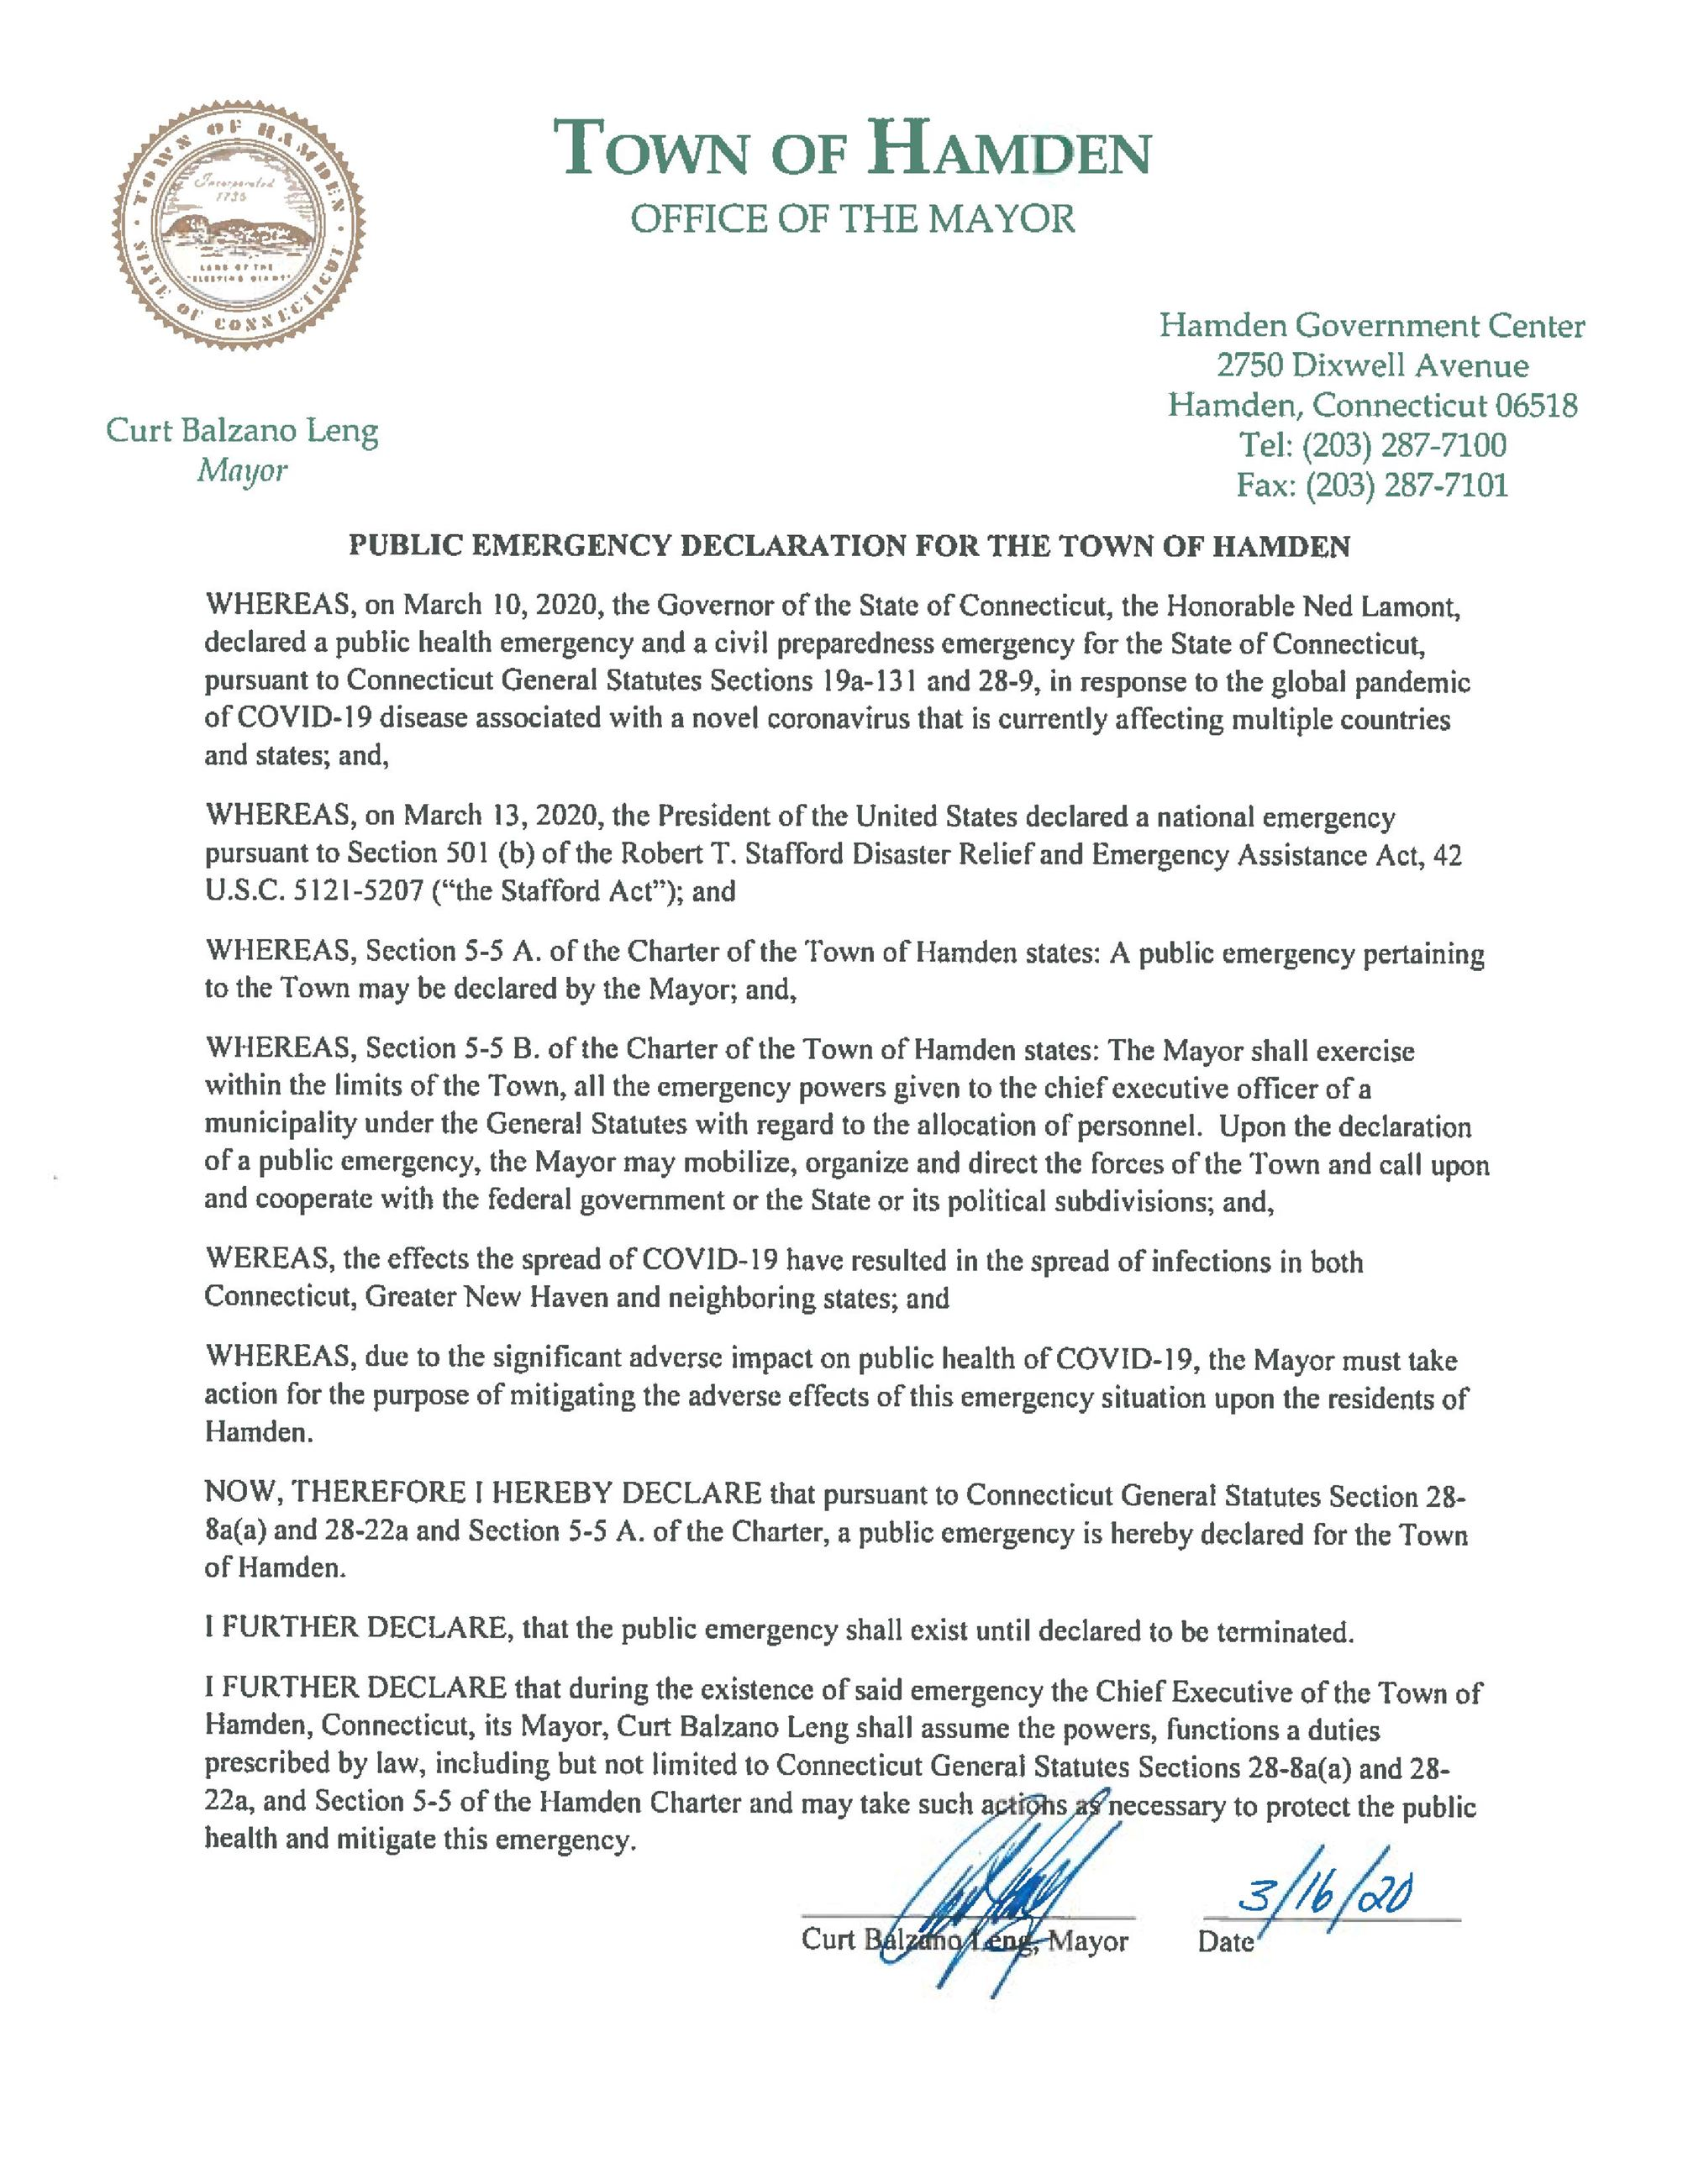 PUBLIC EMERGENCY DECLARATION FOR THE TOWN OF HAMDEN-page-001